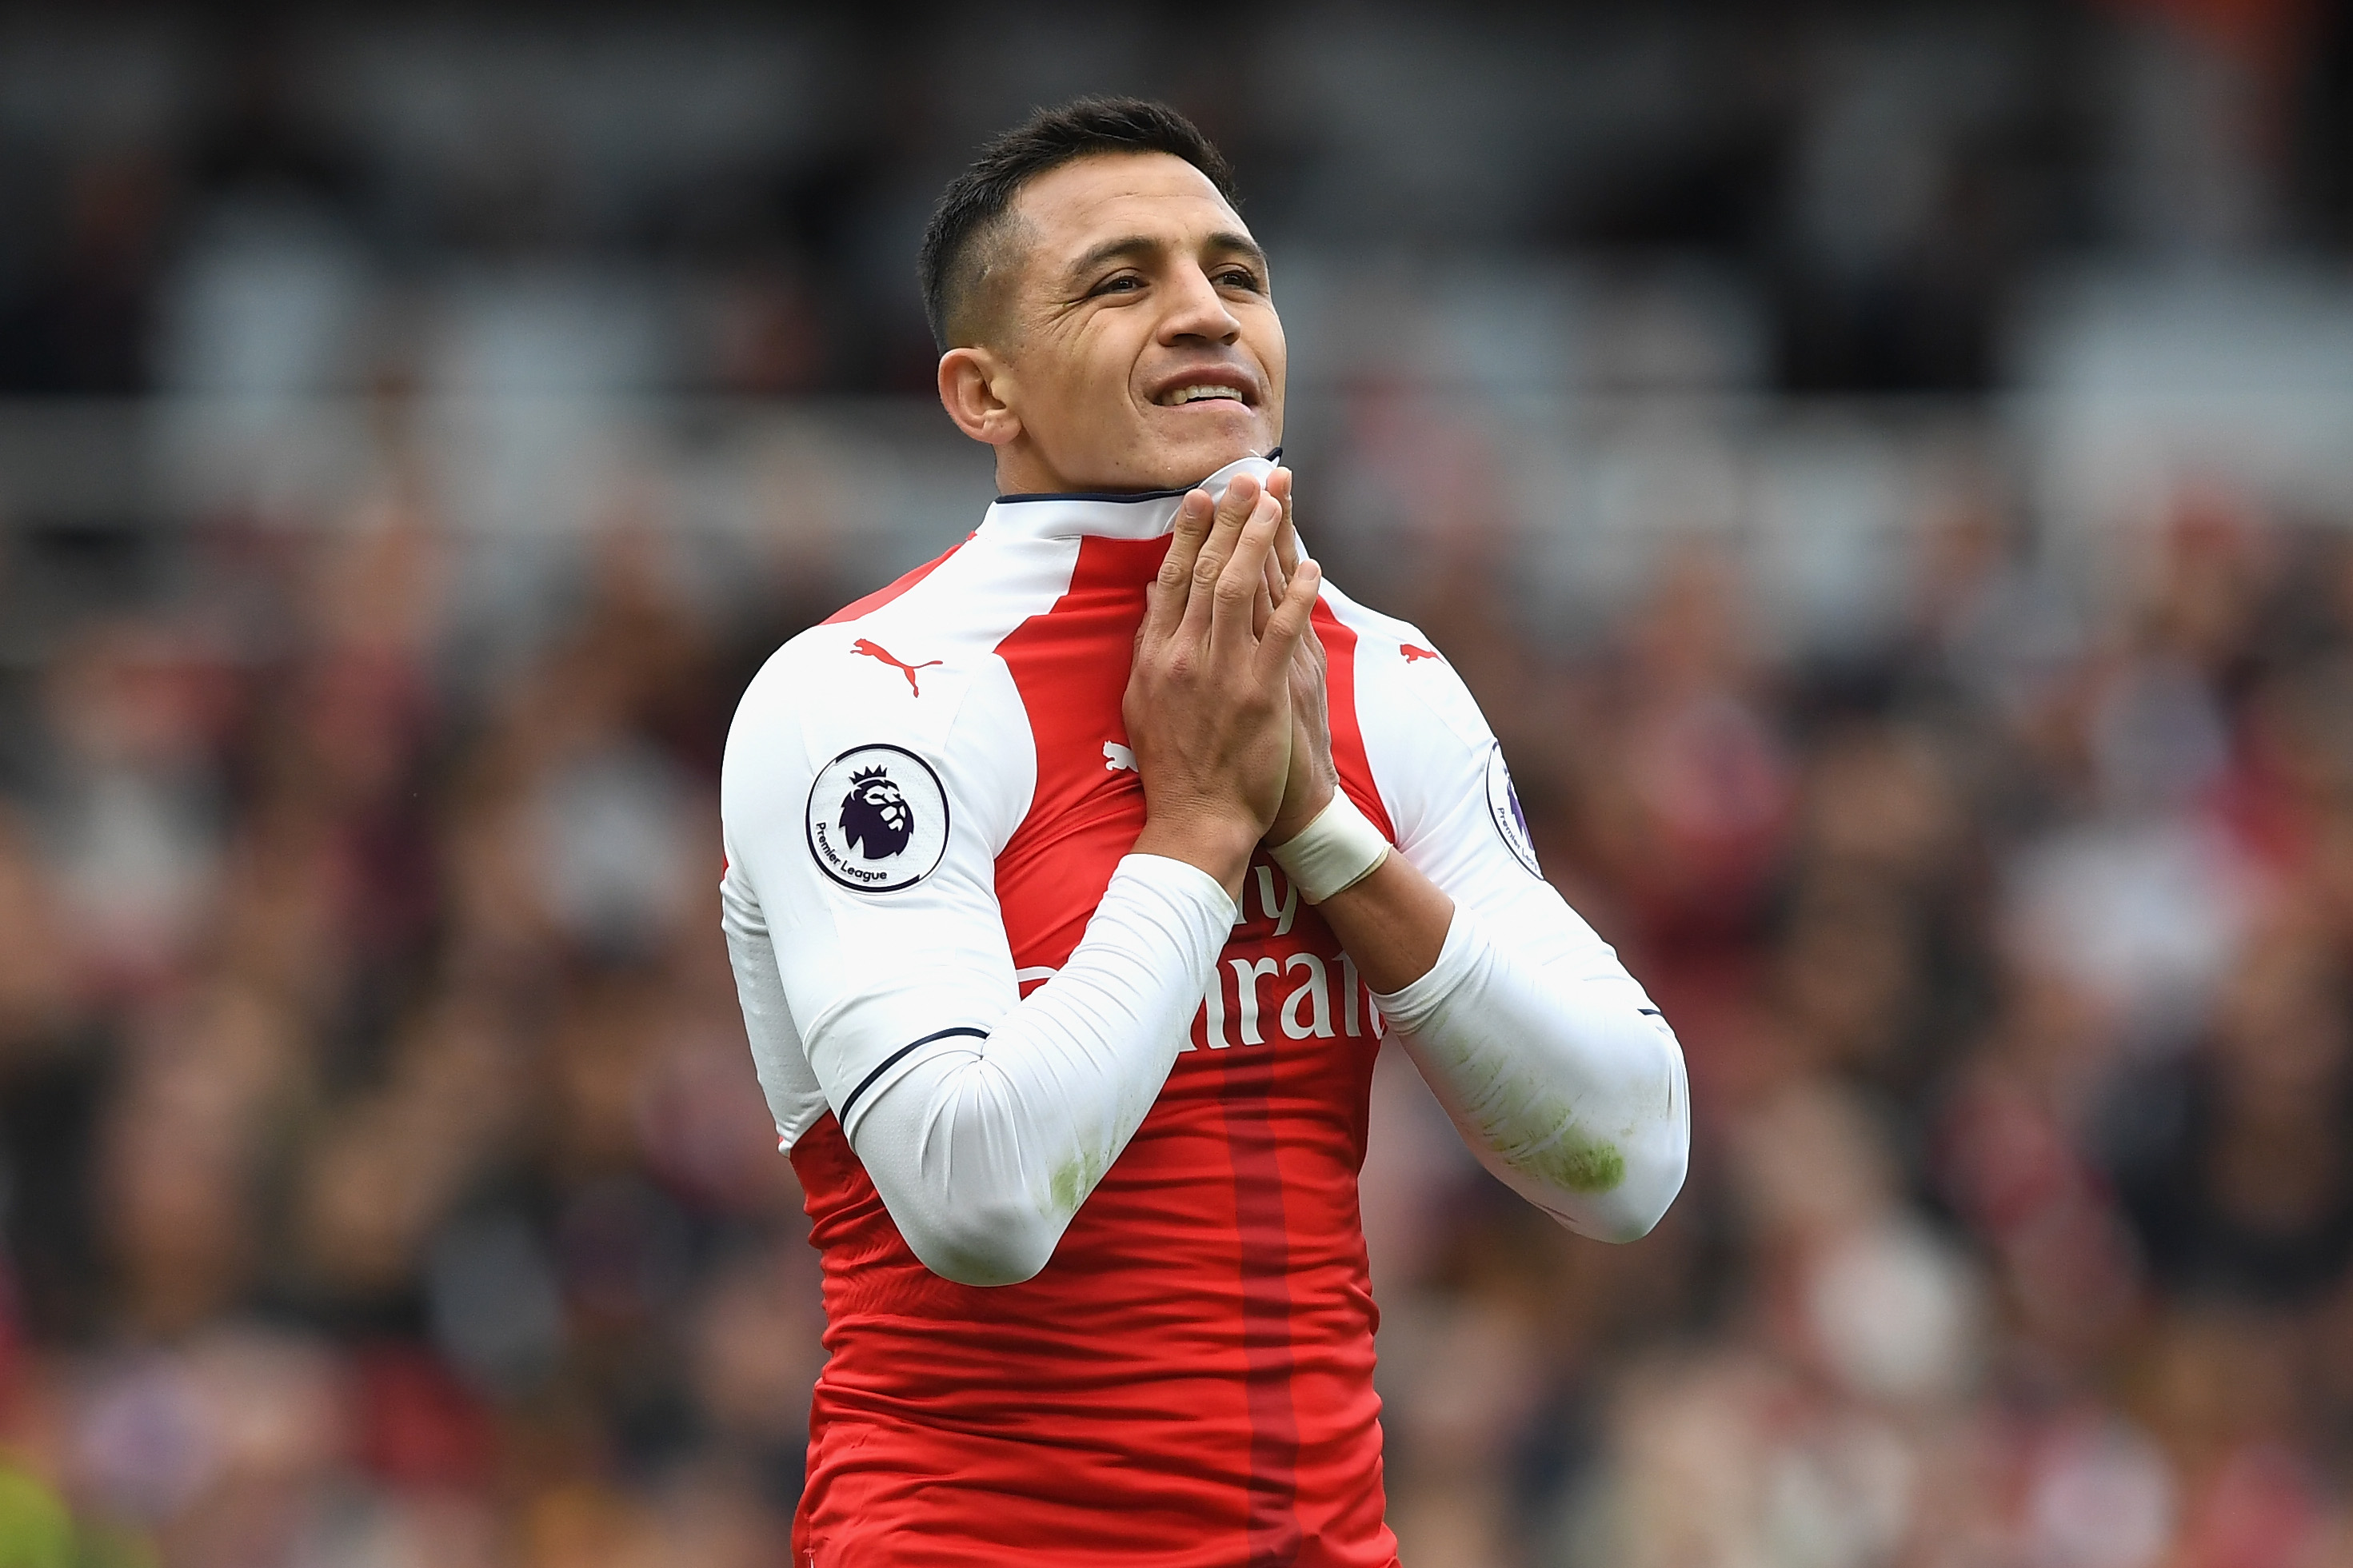 LONDON, ENGLAND - OCTOBER 22: Alexis Sanchez of Arsenal reacts during the Premier League match between Arsenal and Middlesbrough at the Emirates Stadium on October 22, 2016 in London, England. (Photo by Shaun Botterill/Getty Images)